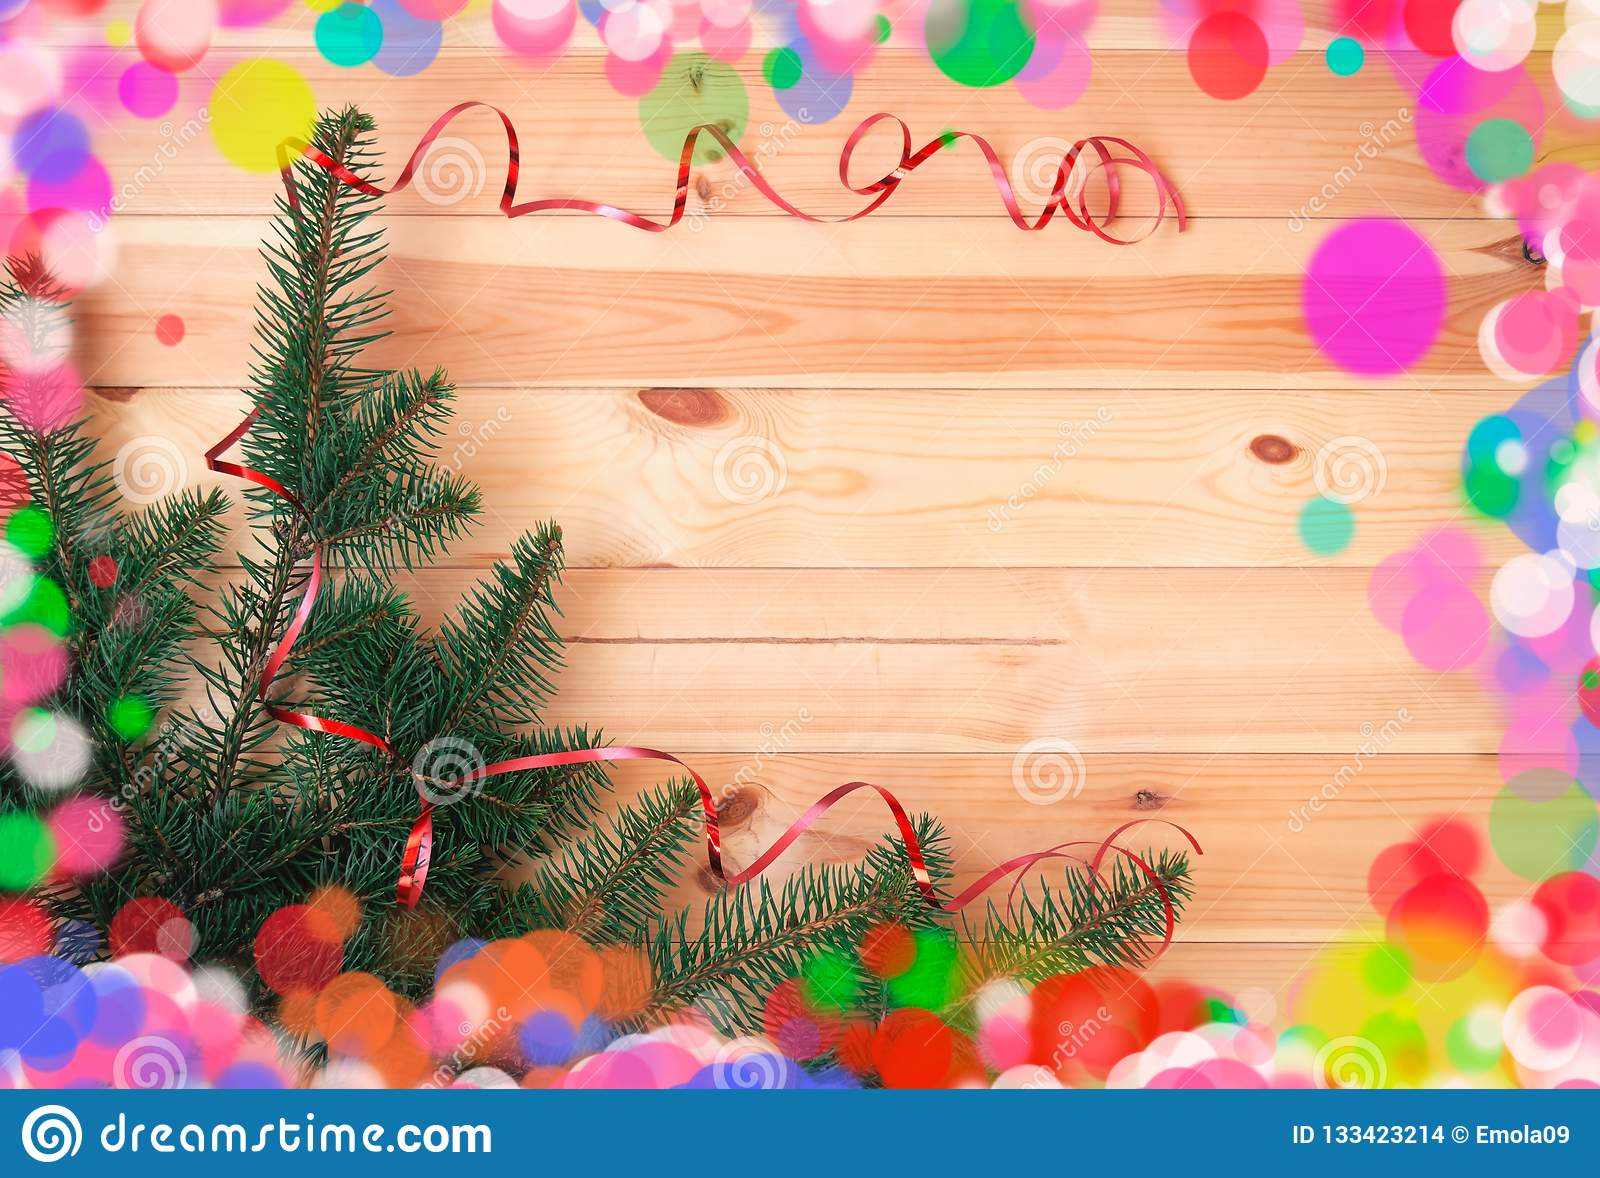 christmas and new year border made of fir branches and ribbon